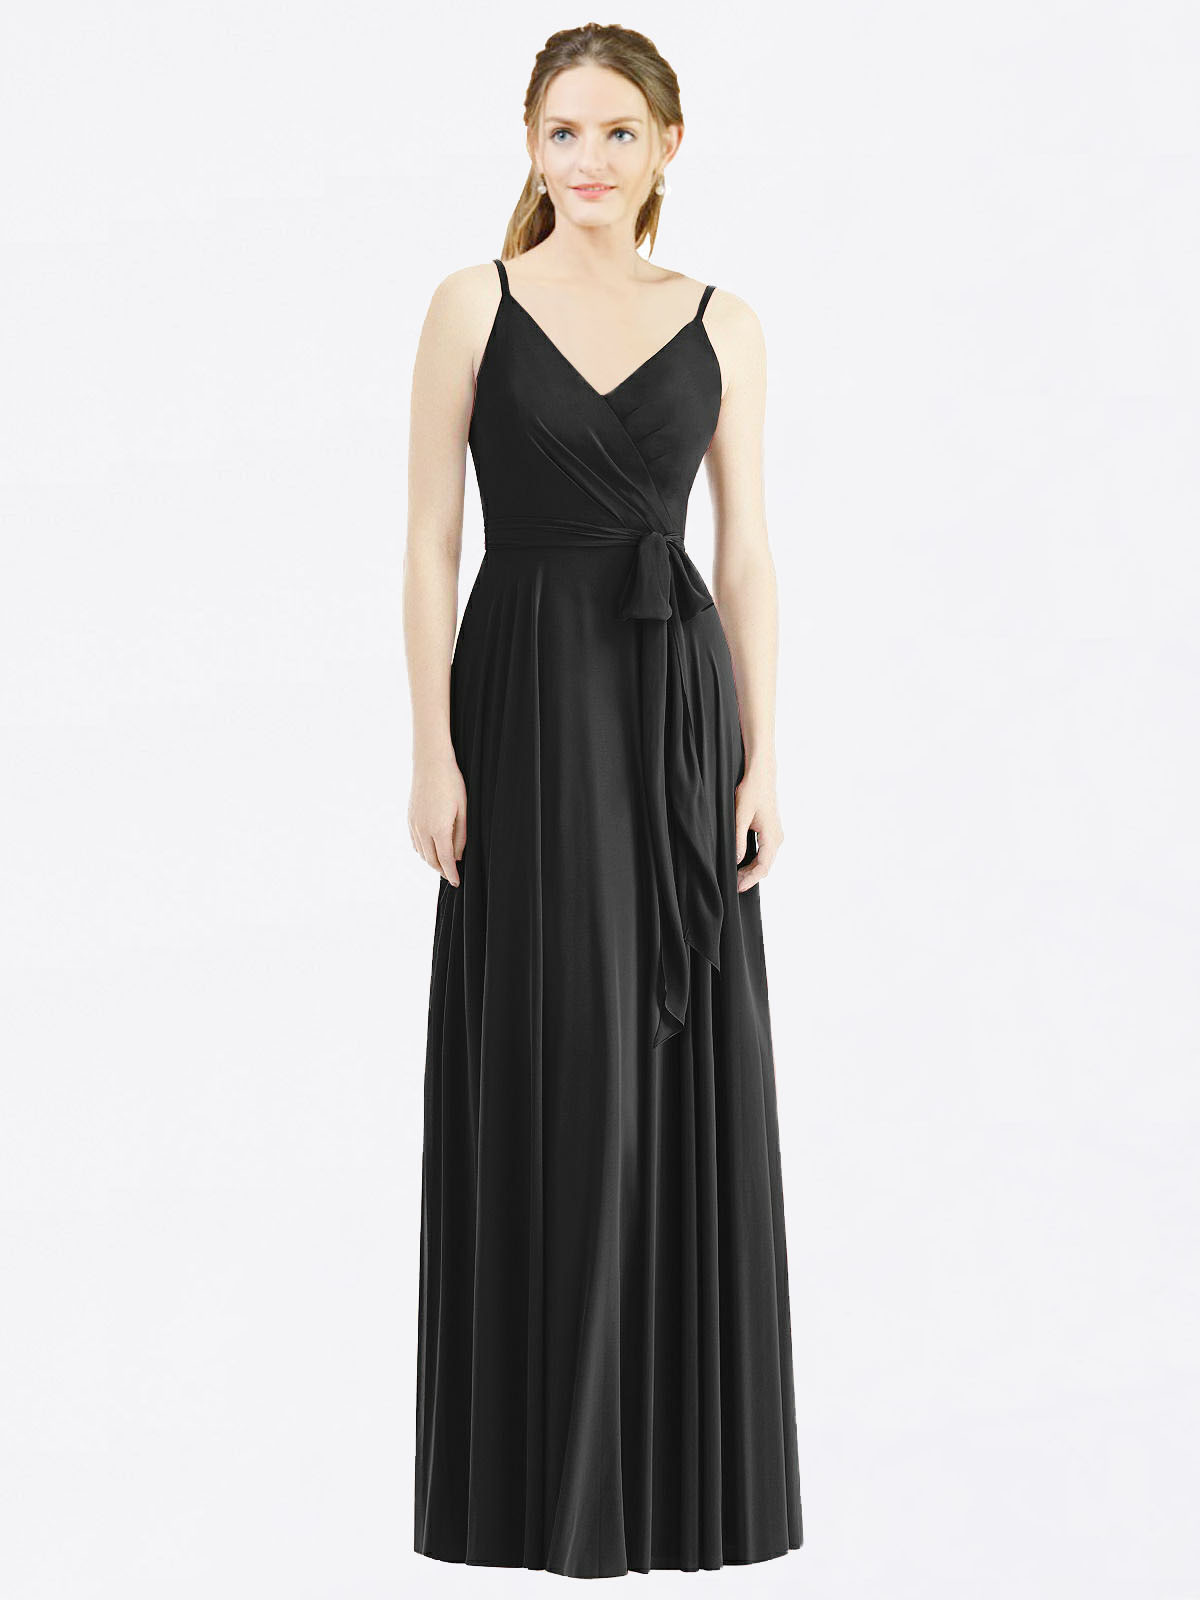 Long A-Line Spaghetti Straps, V-Neck Sleeveless Black Chiffon Bridesmaid Dress Madilyn